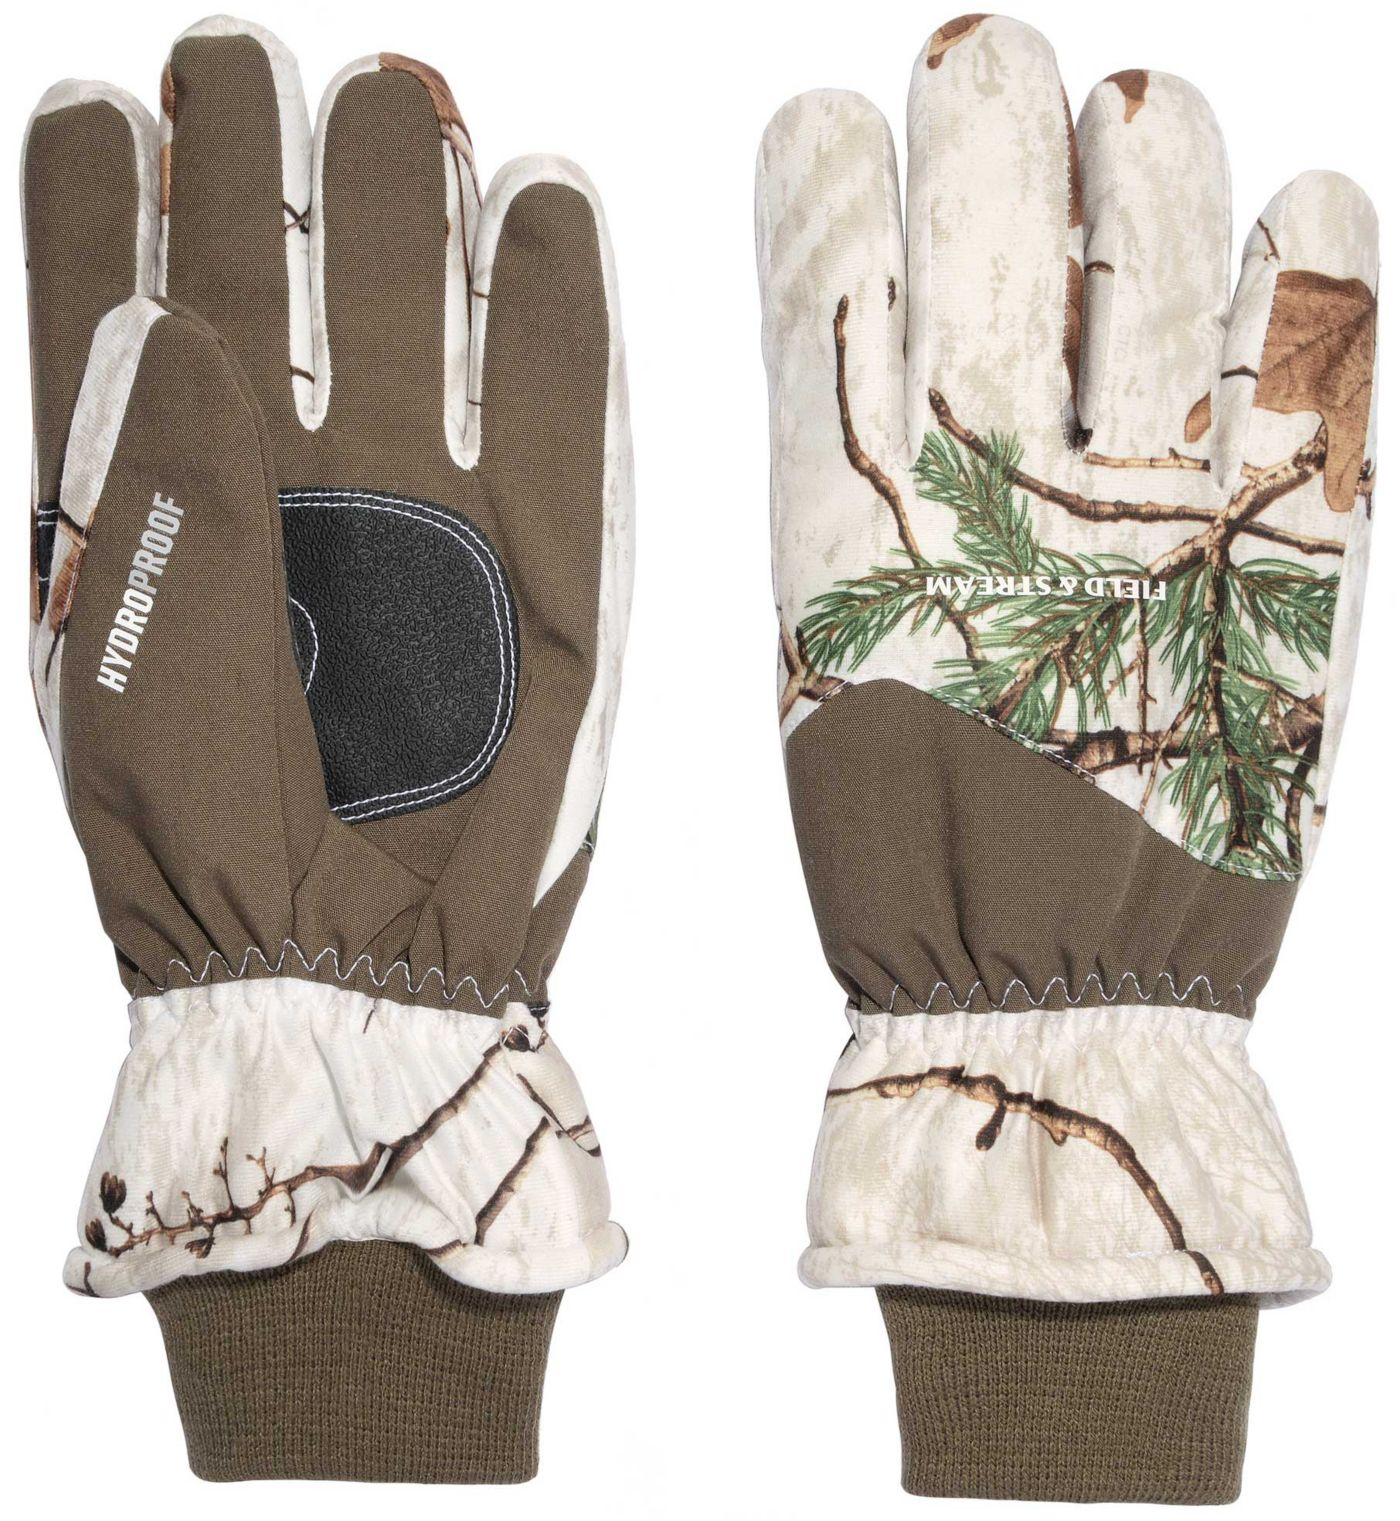 Field & Stream Men's Pursuit Hunting Glove